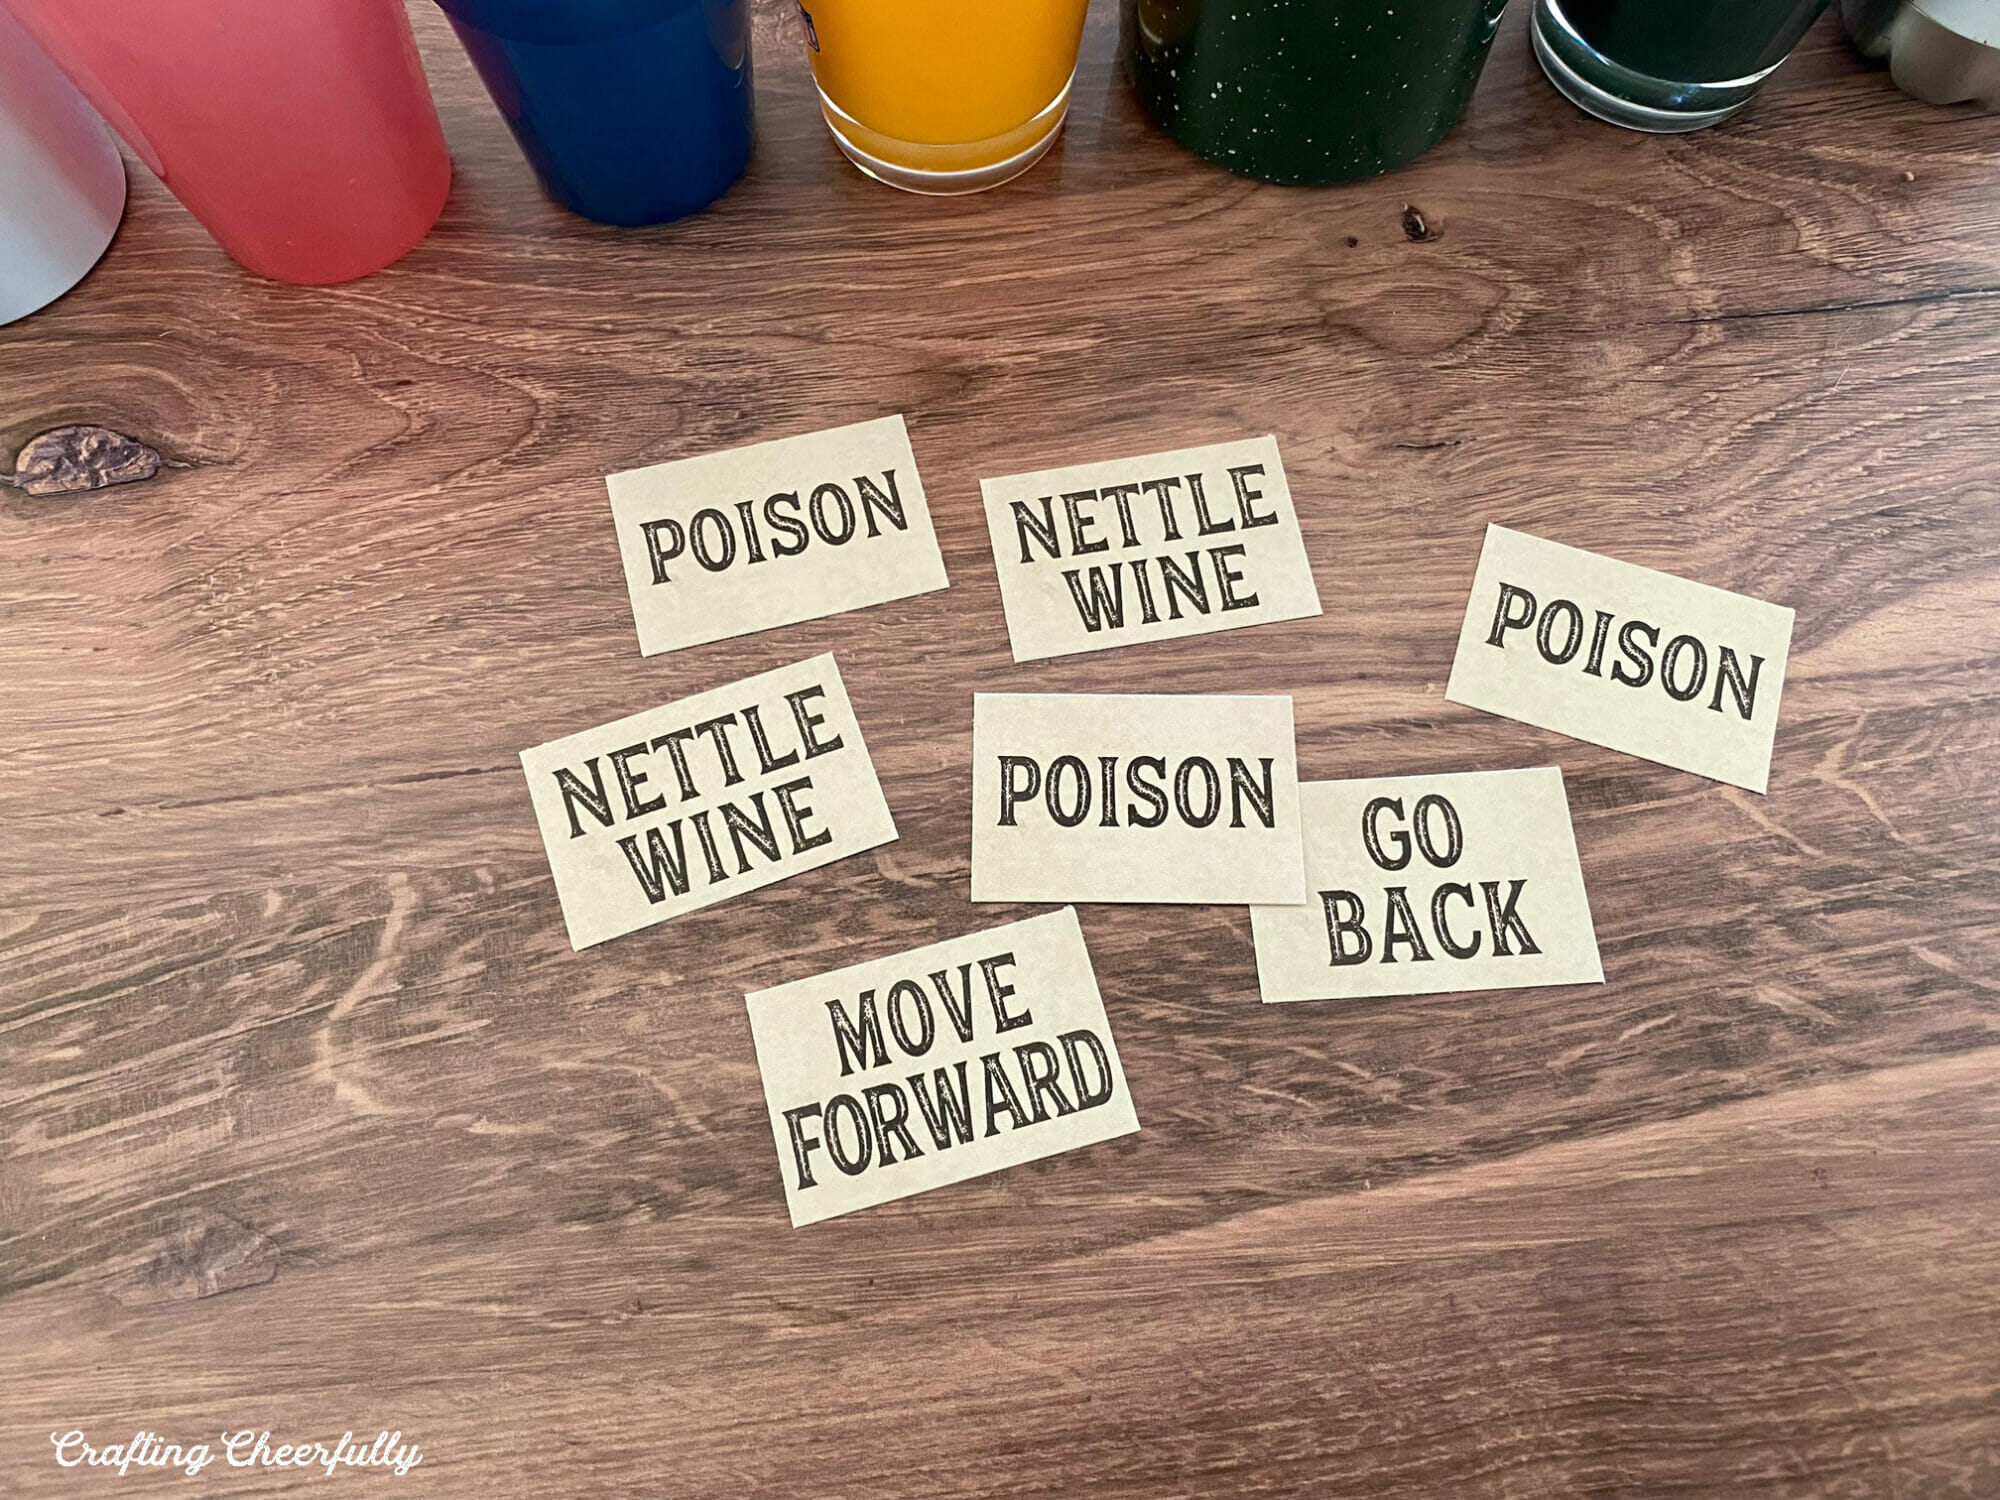 Small game cards that read Nettle Wine, Poison, Go Back and Move Forward lay on a table in front of cups.